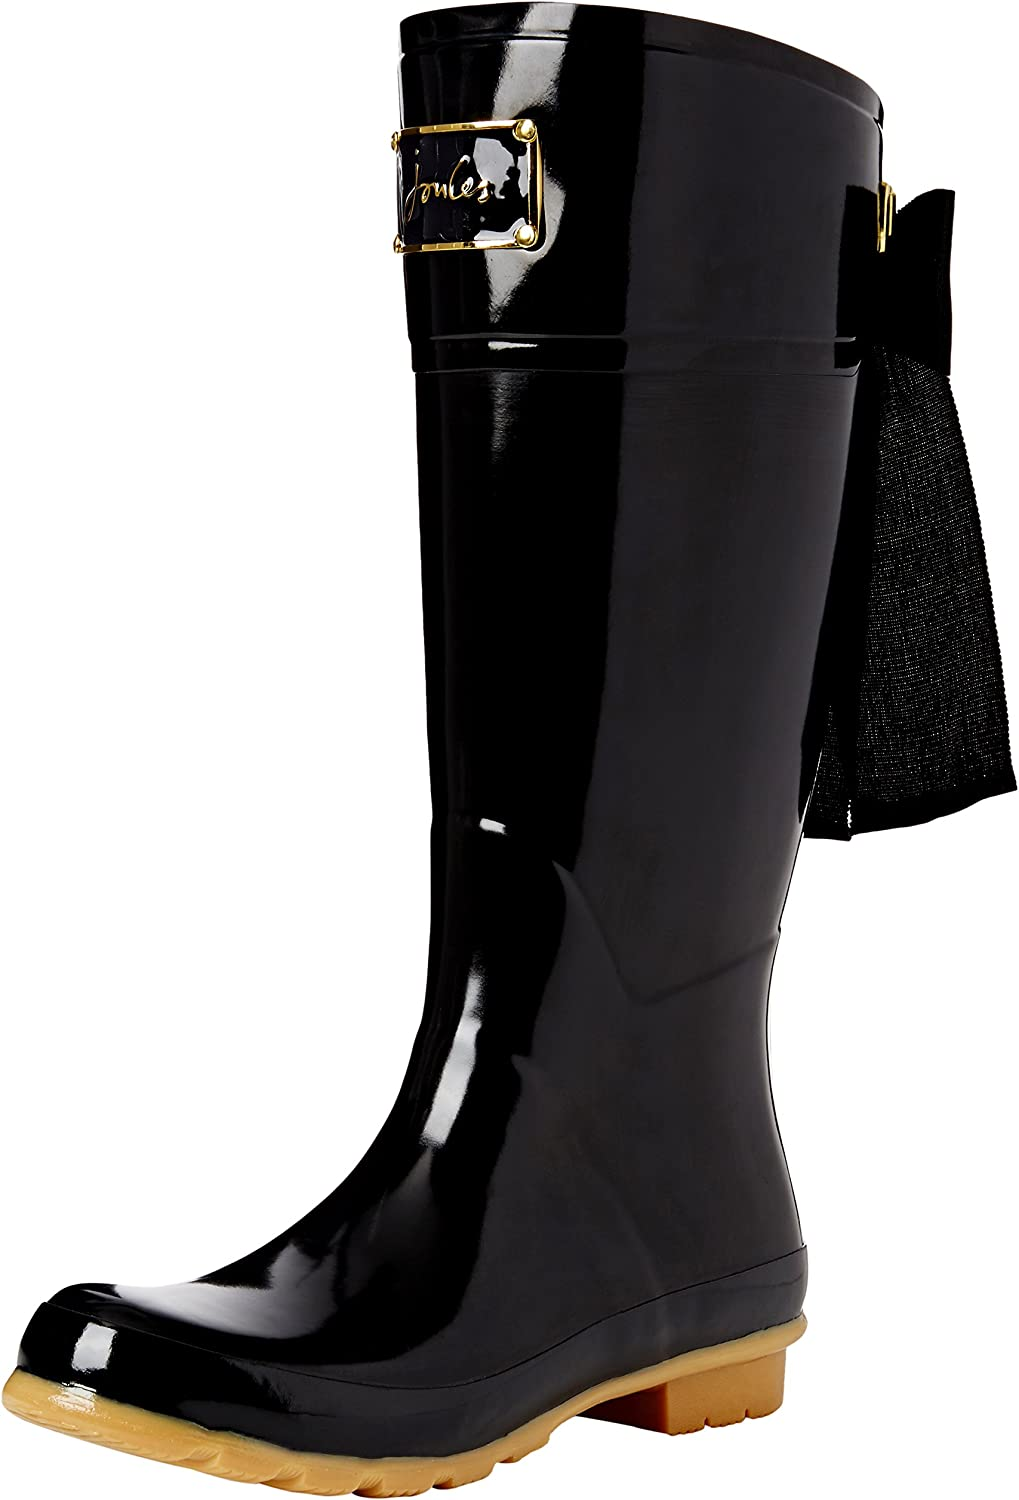 Joules Womens Evedon Rubber Boots